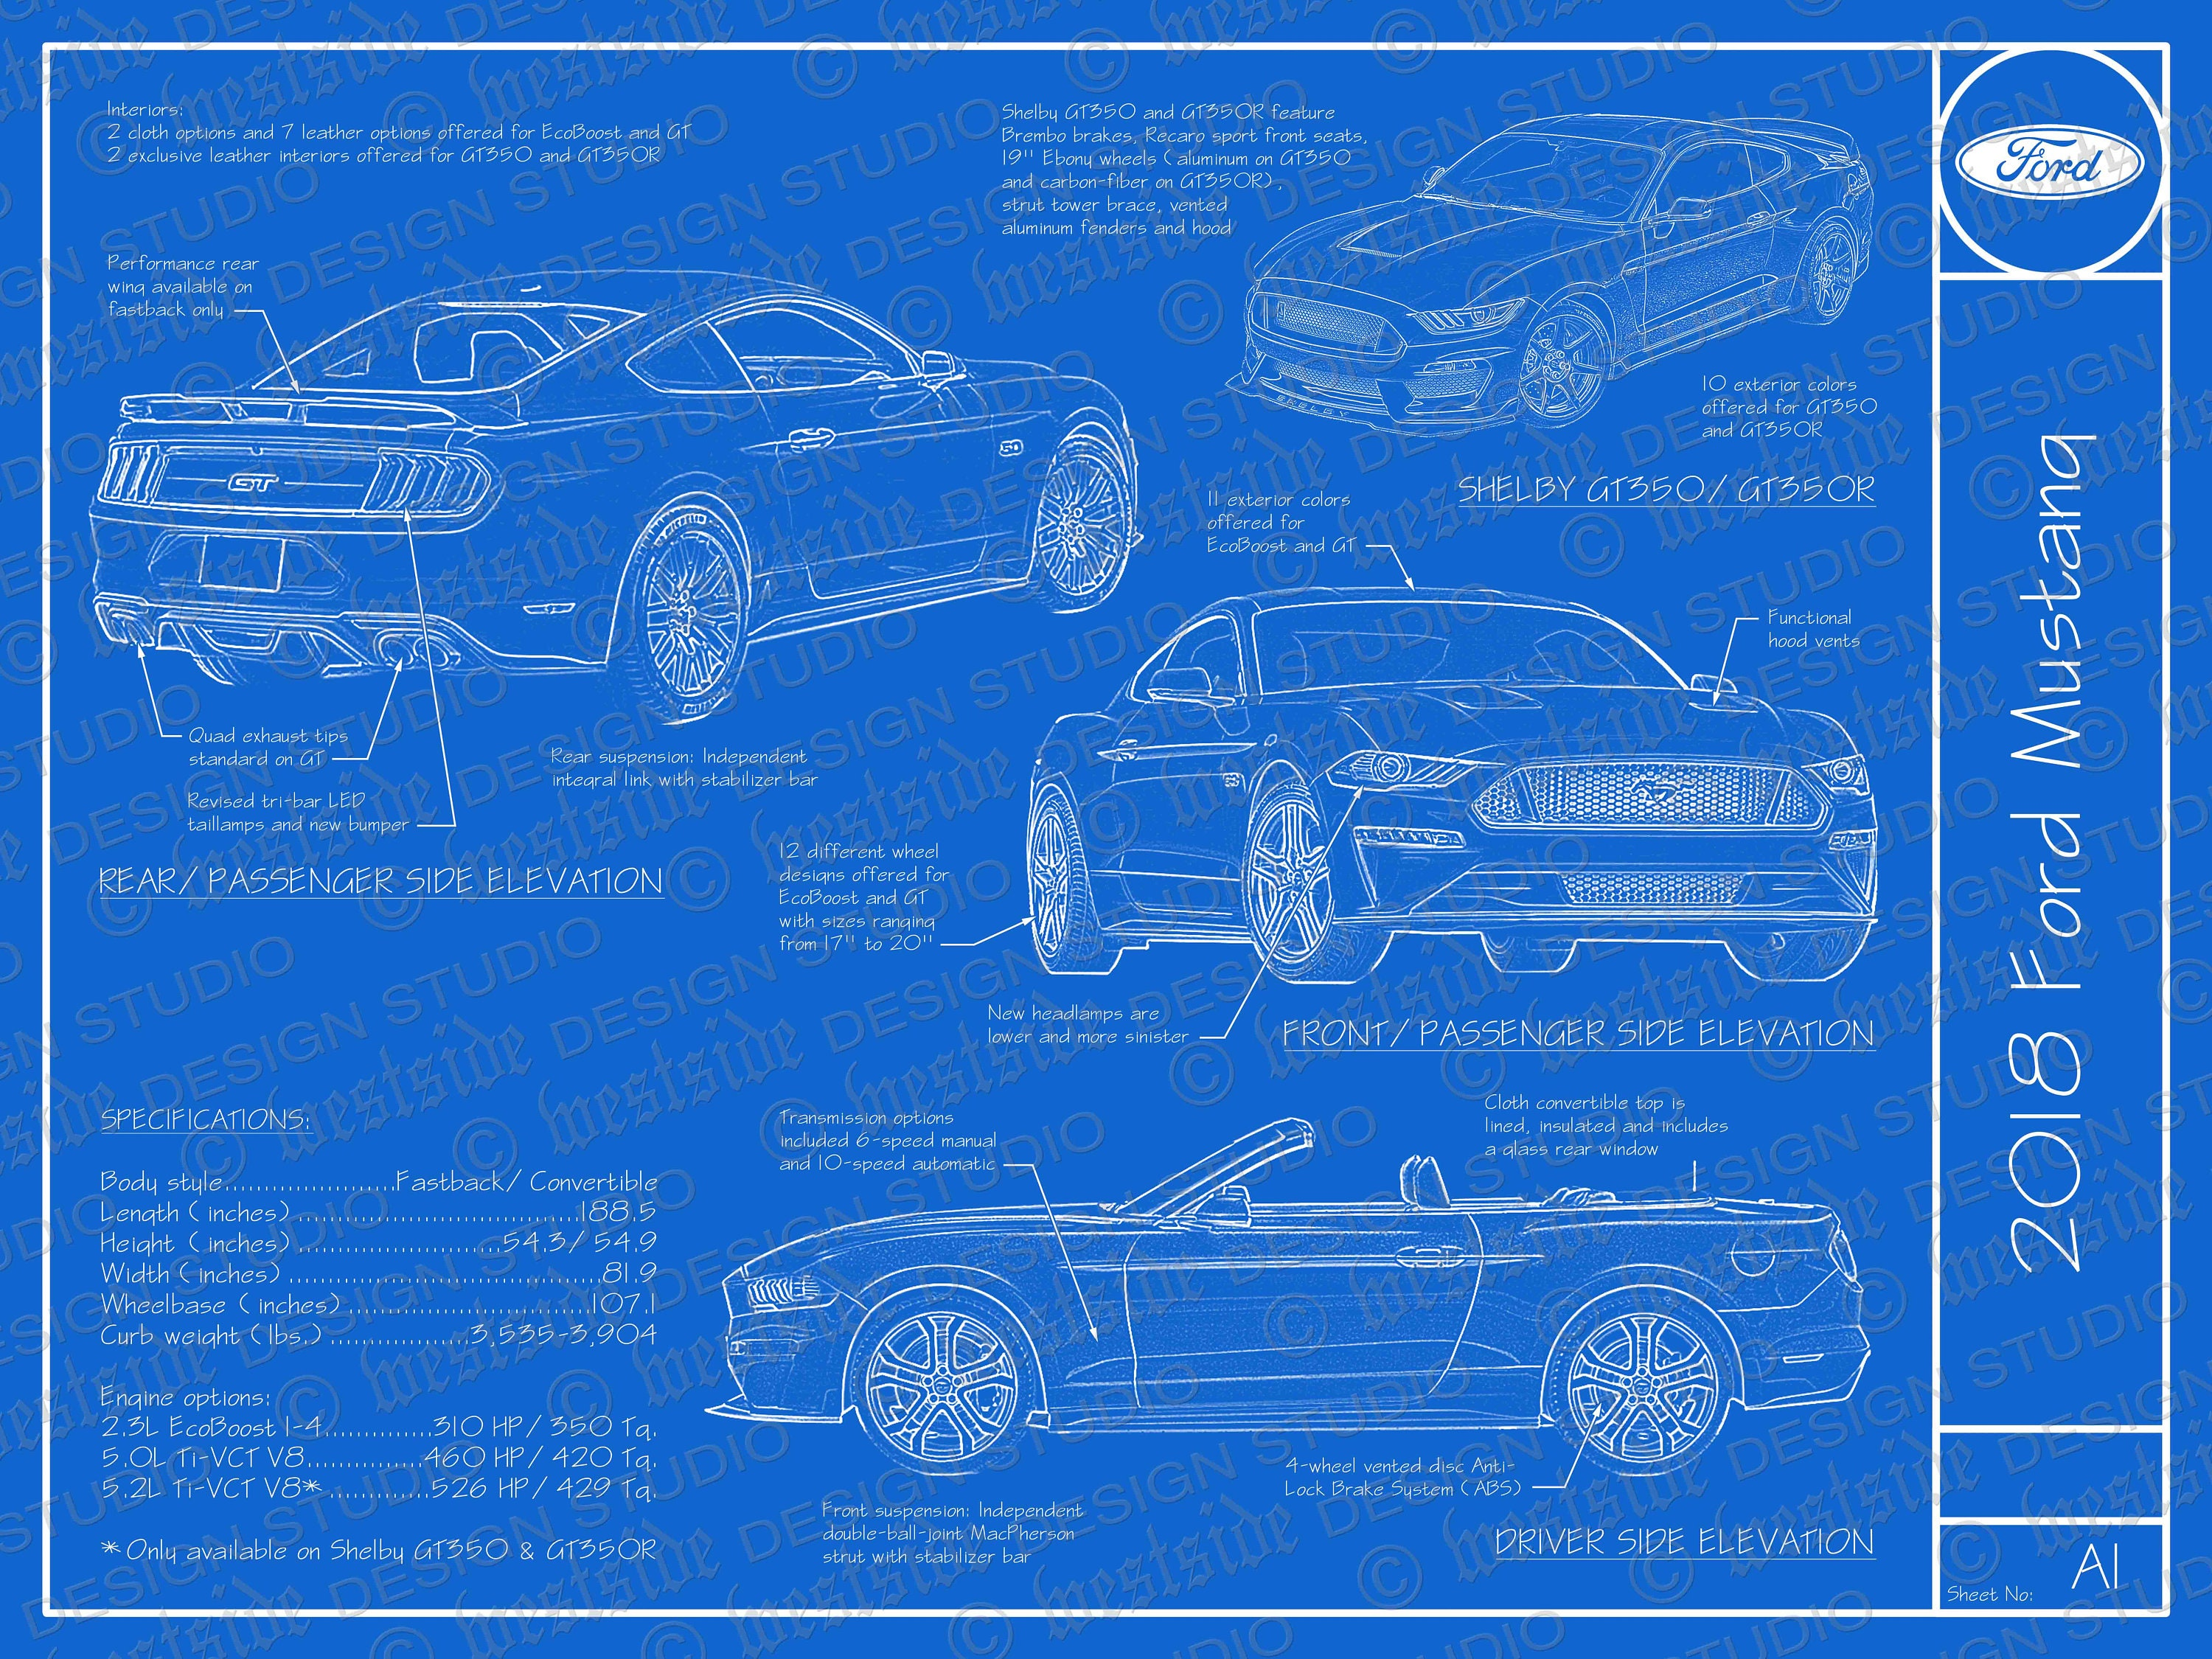 2018 ford mustang blueprint poster 18x24 jpeg image file